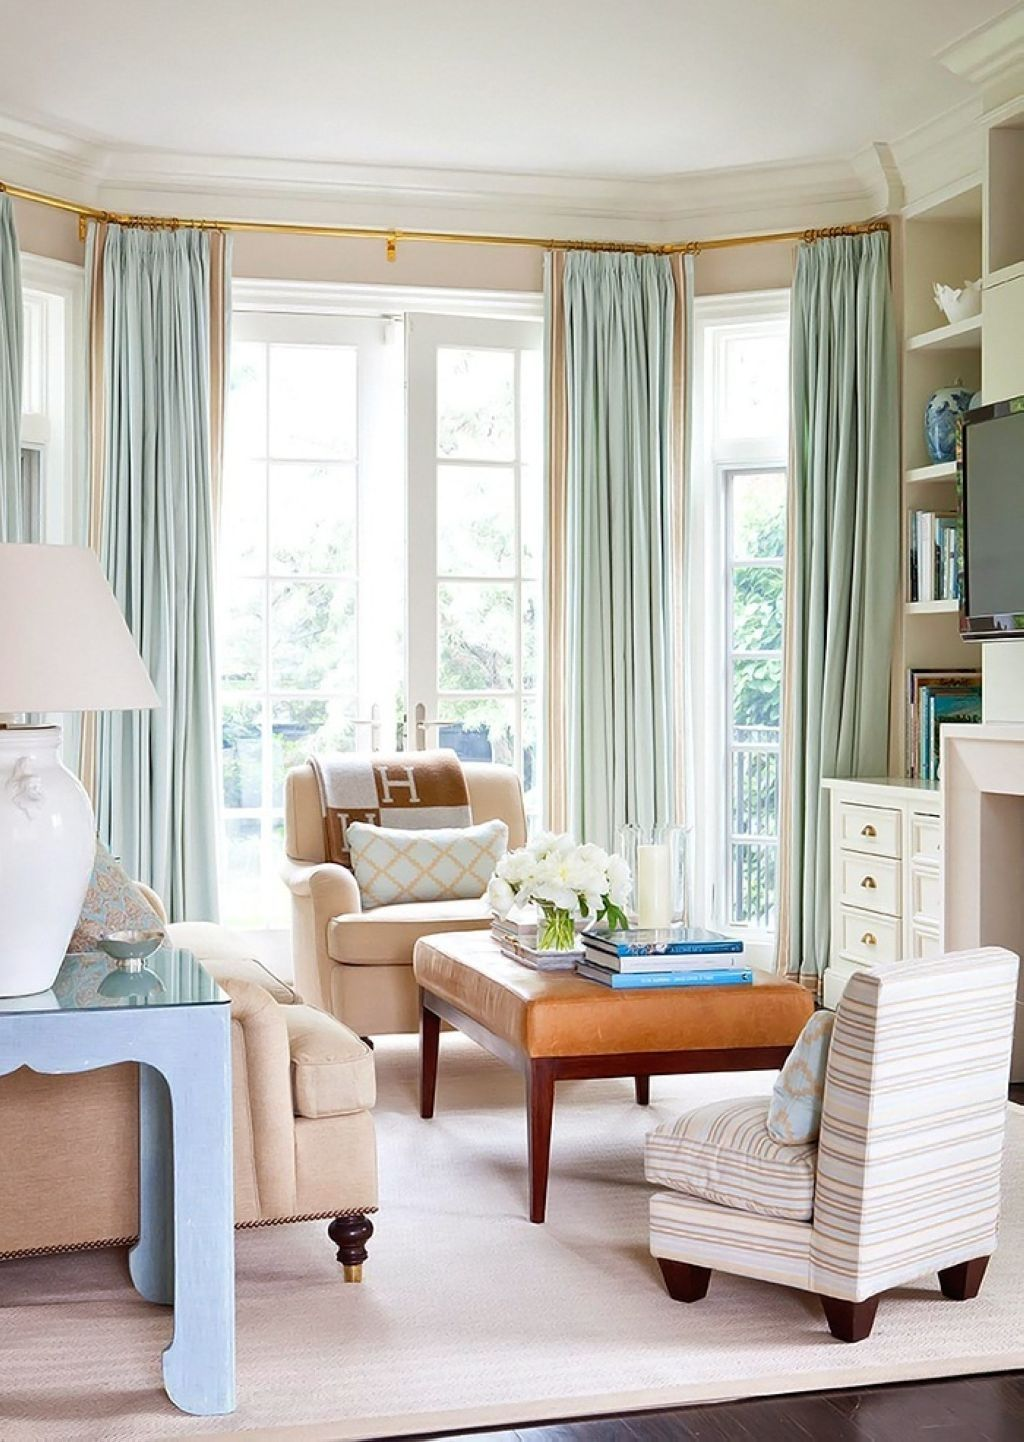 Five Ways Bay Windows Can Beautify Your Home  Window decorating